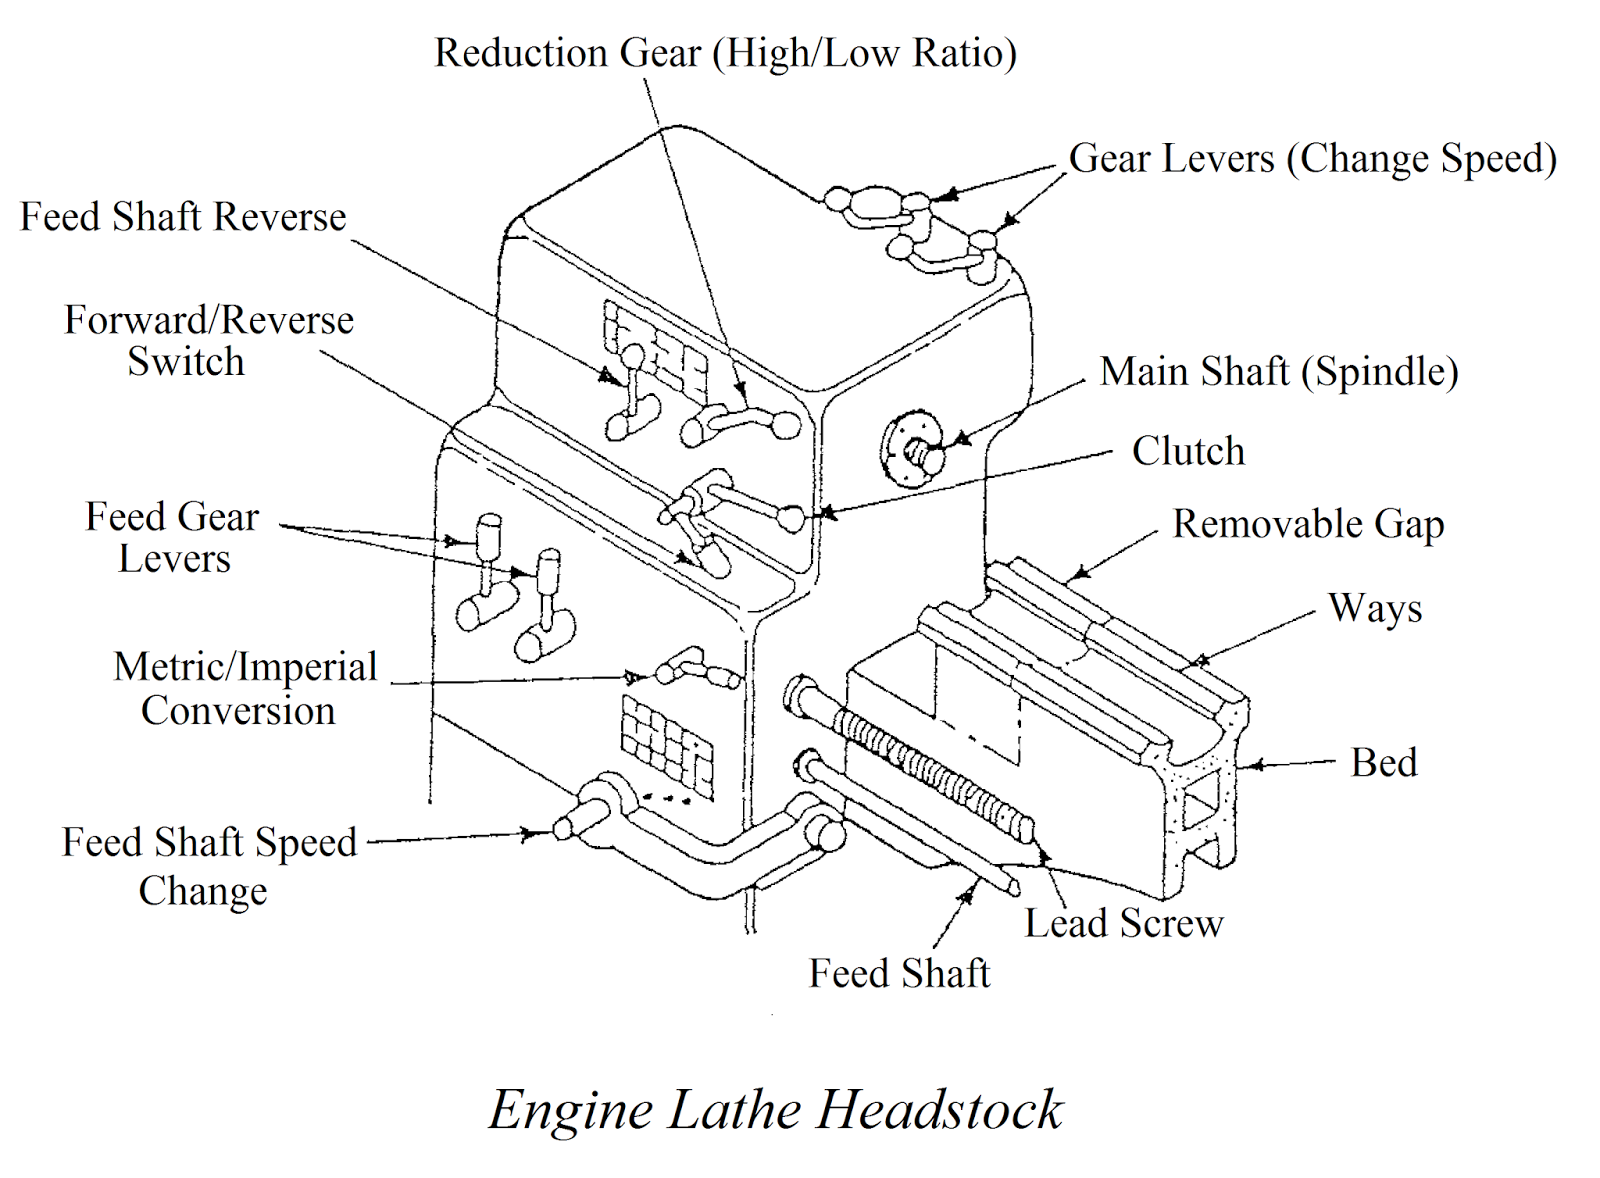 Engine Lathe Parts Diagram Related Keywords Suggestions Questions Answers About The Introduction Of